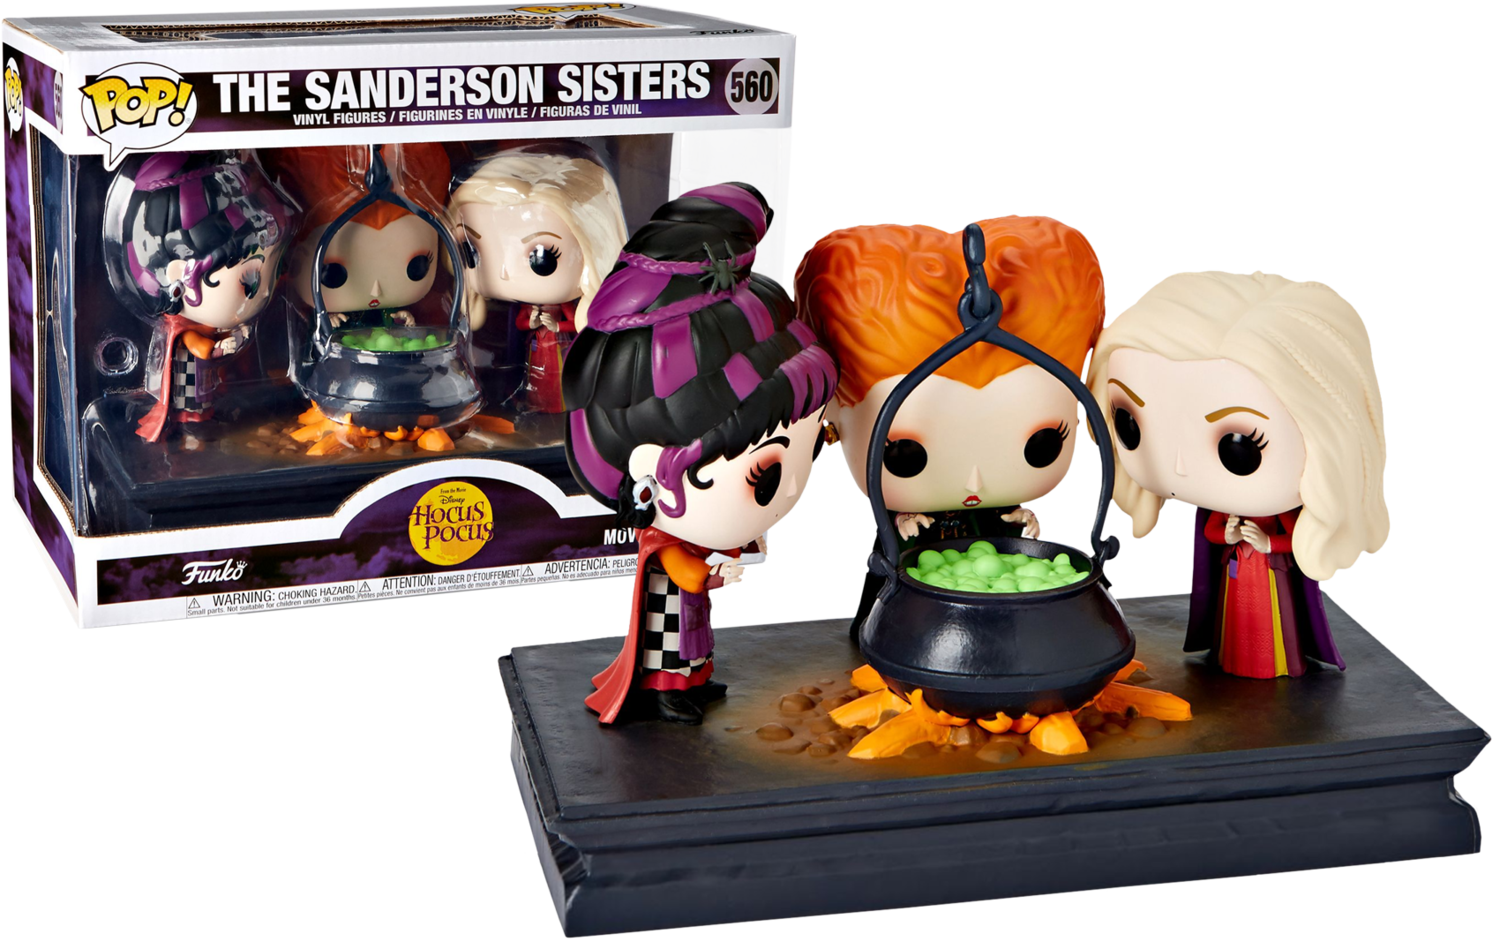 PRE-ORDER Exclusive Hocus Pocus (1993) - The Sanderson Sisters Movie Moments Pop! Vinyl Figure 3-Pack